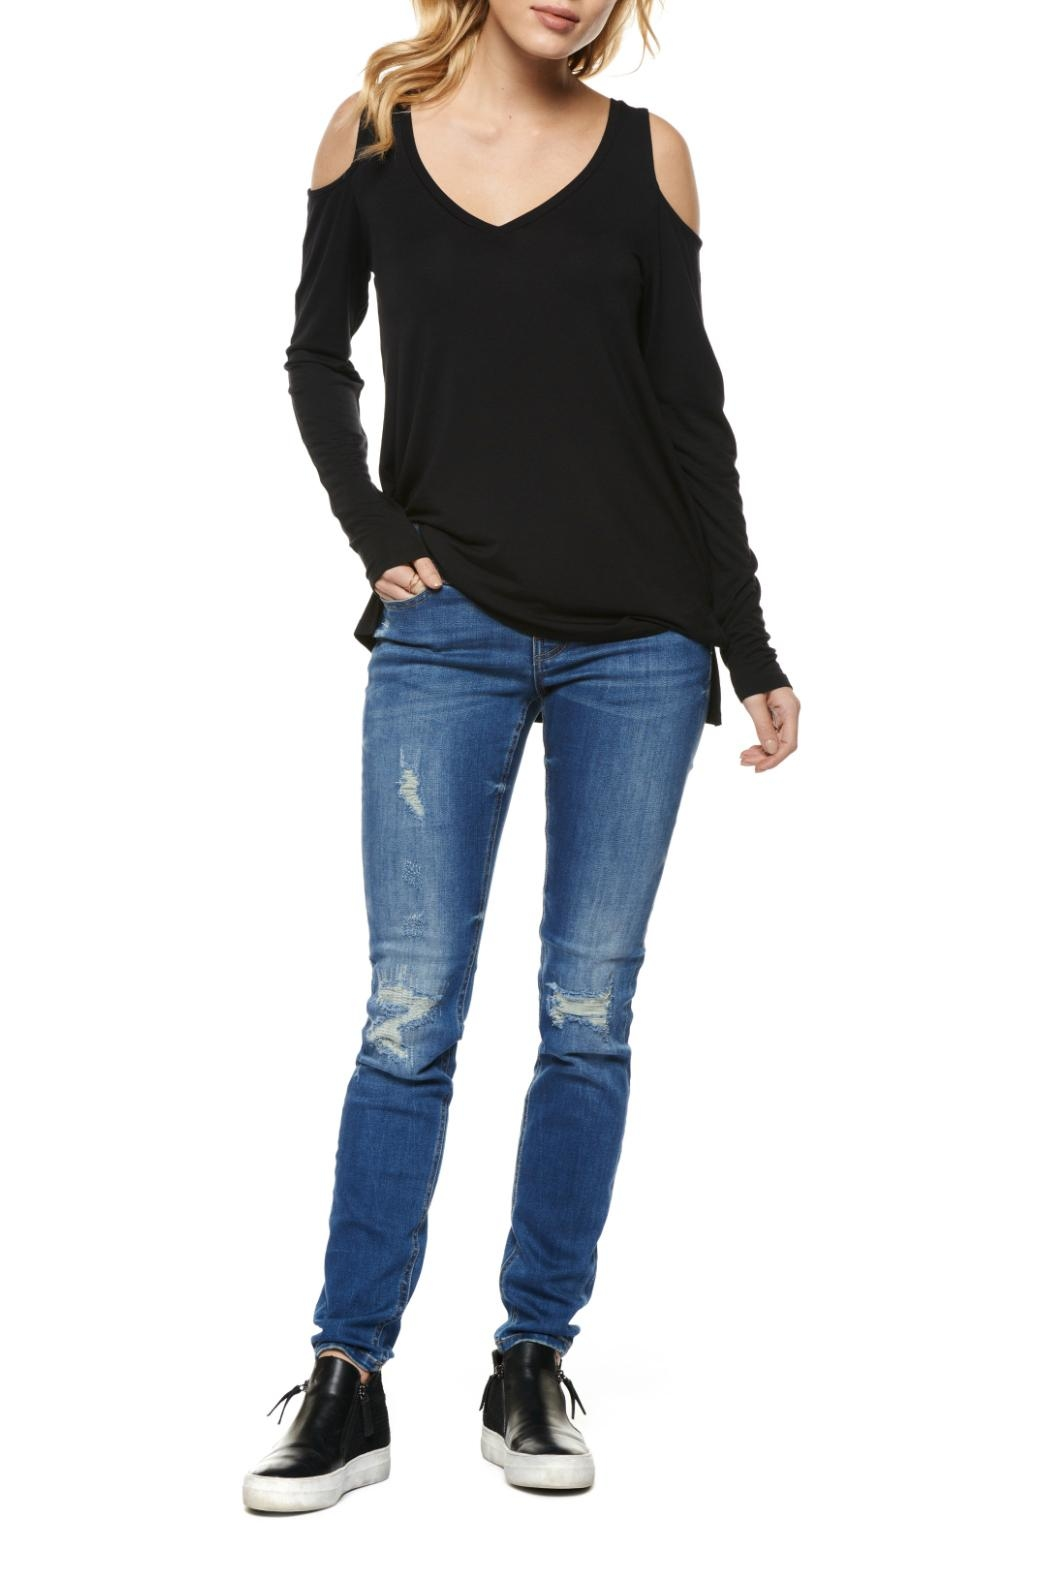 a8fc0144d7b8e5 Dex Cold Shoulder Long Sleeve Top from New Jersey by Charlotte s Web ...